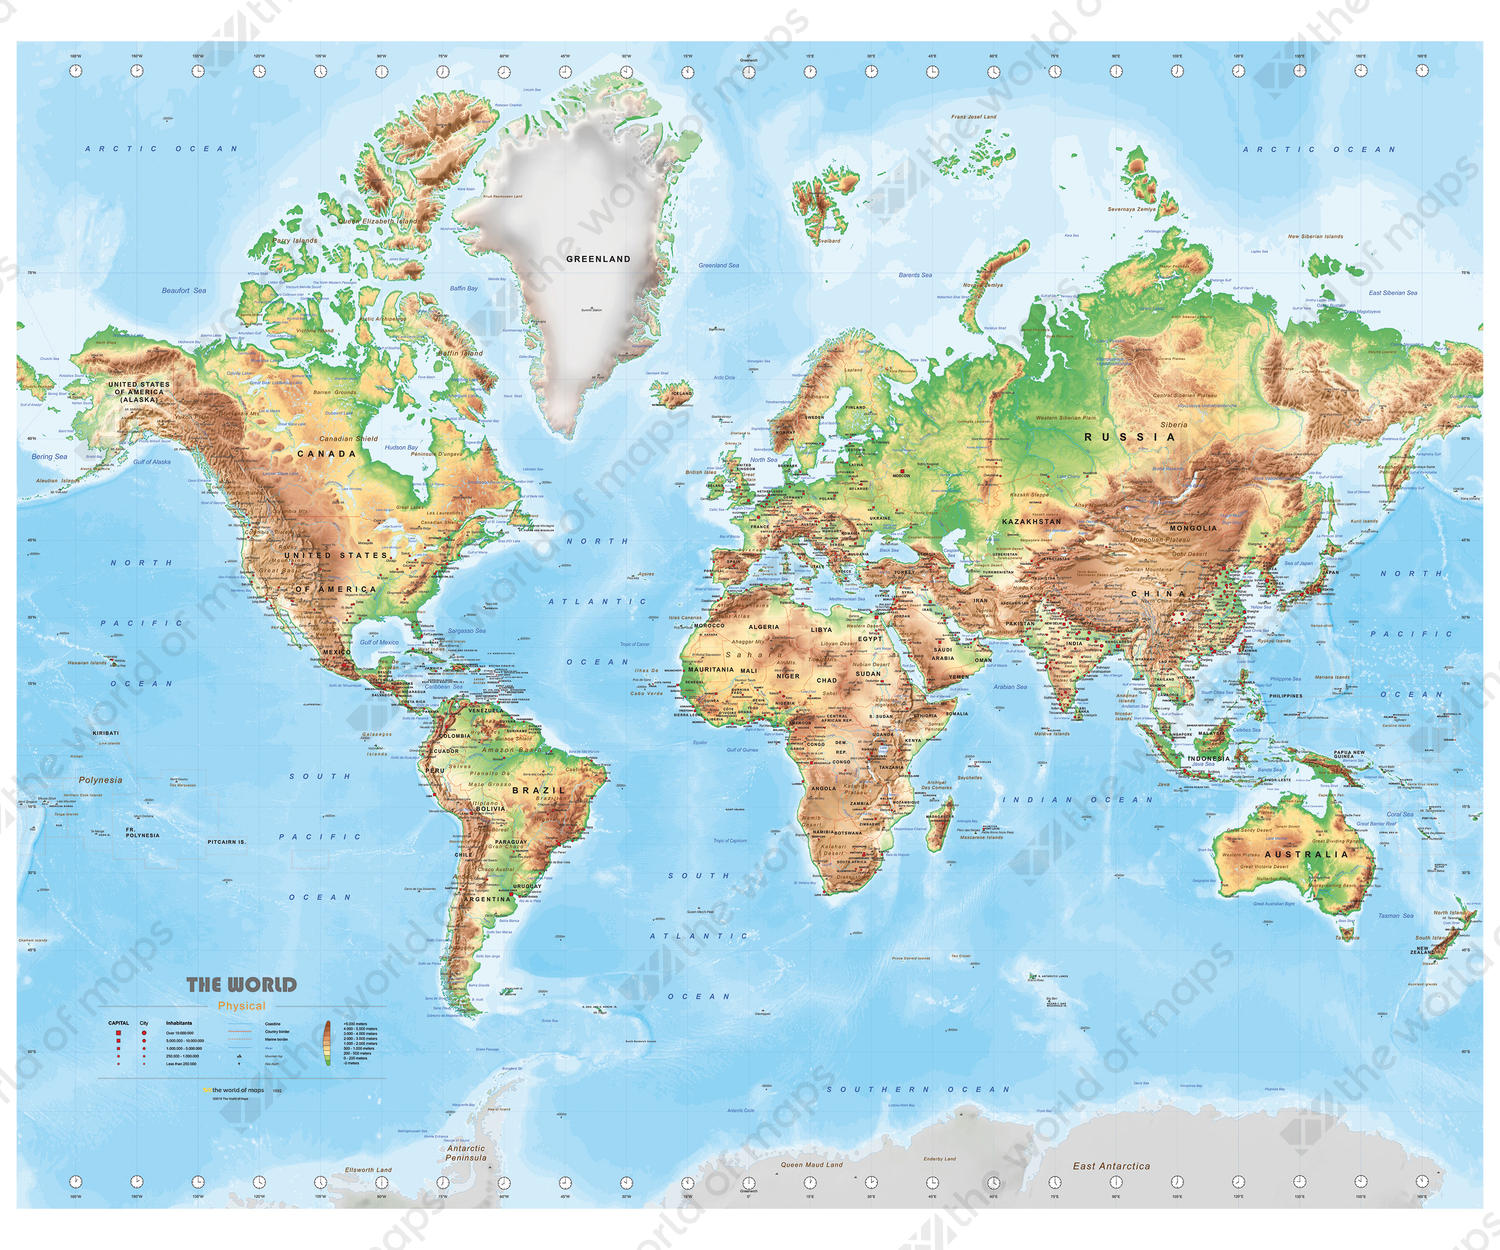 Digital physical map of The World medium 1502 The World of Mapscom